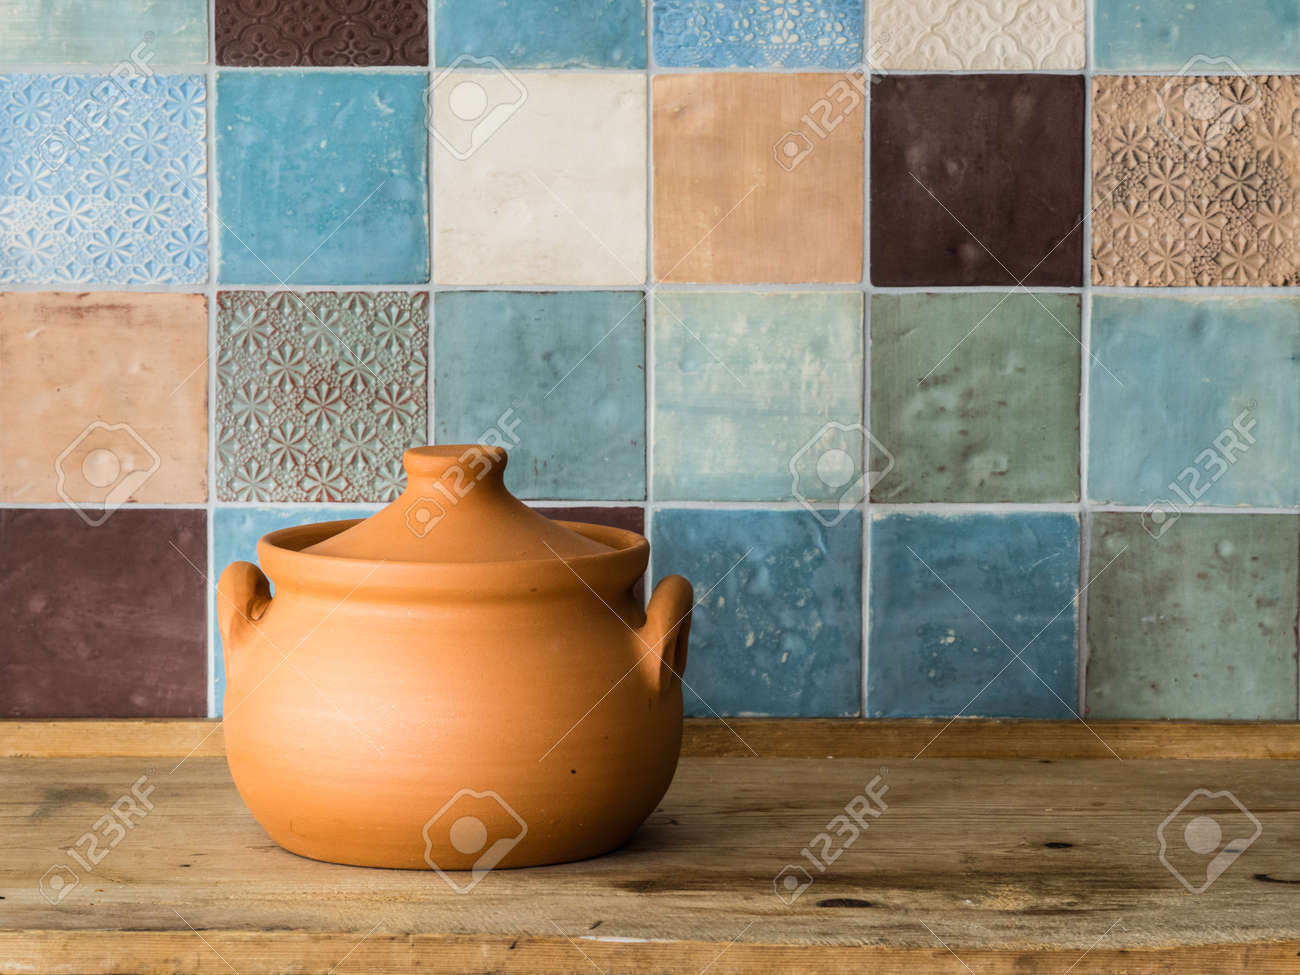 Ceramic Pot In A Rustic Kitchen Stock Photo, Picture And Royalty ...